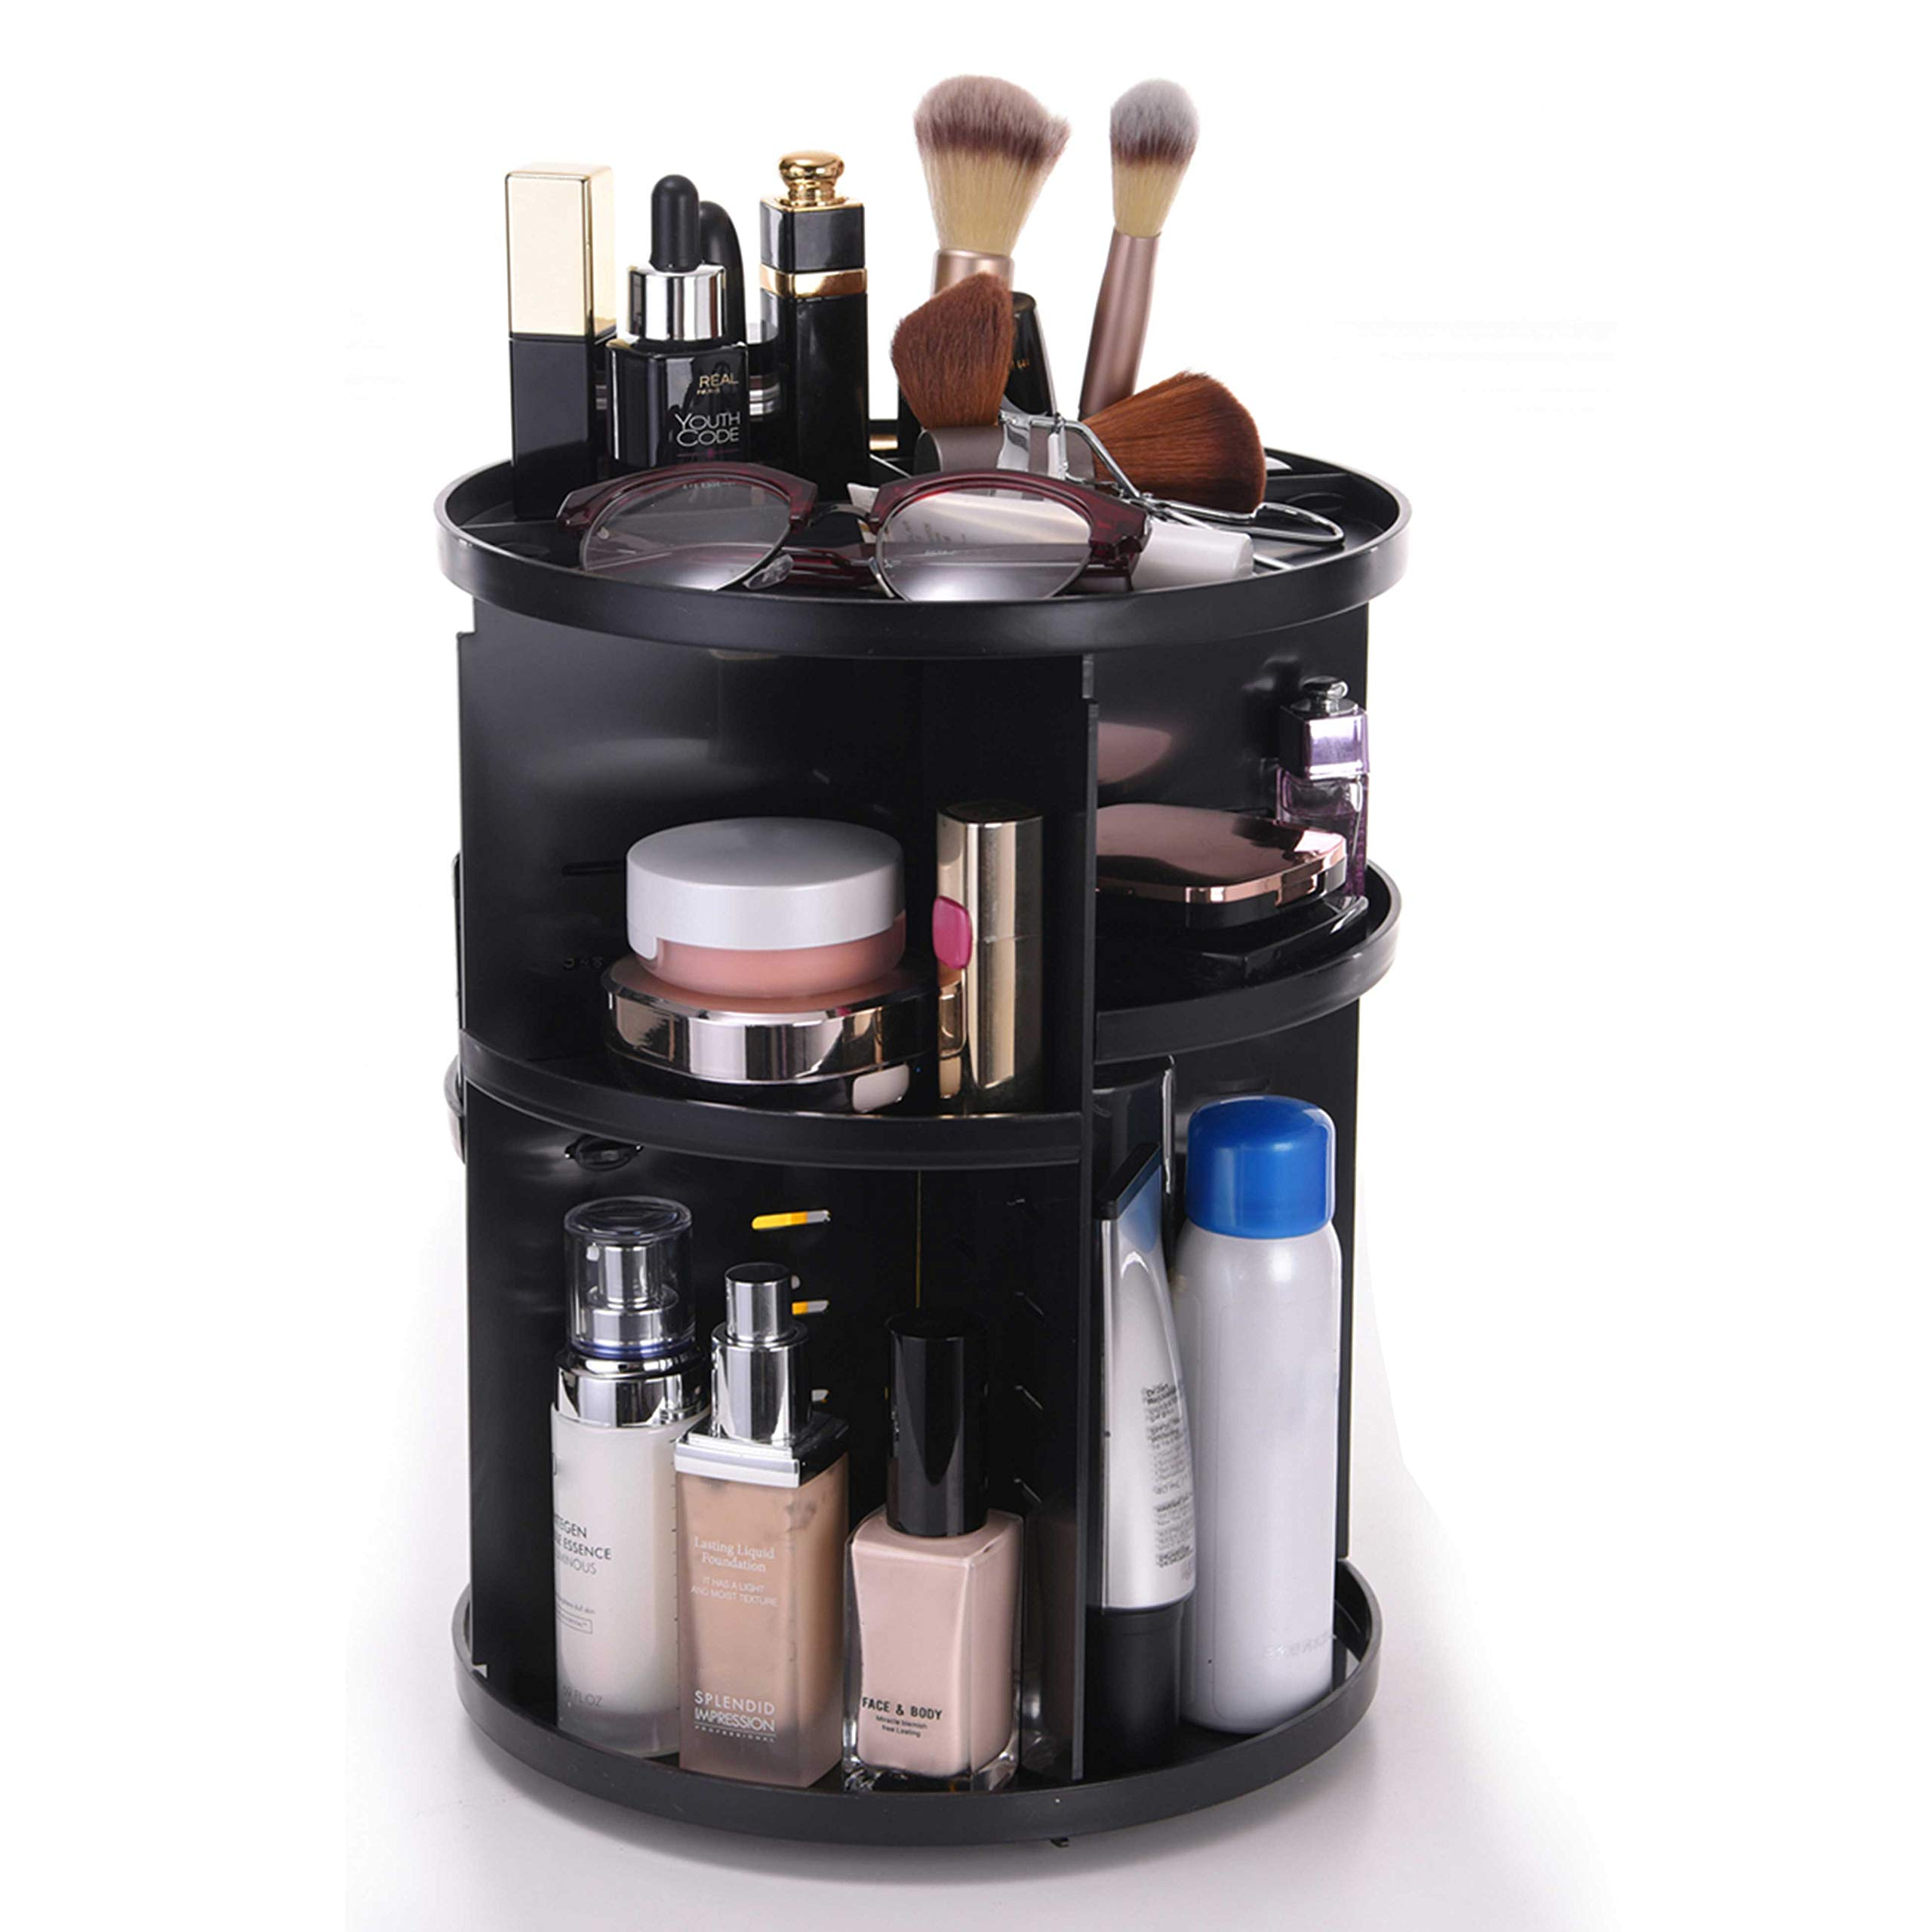 WEBI Thicken Makeup Organizer: 360̊ Rotating, Large Capacity, DIY 7-Layers Adjustable, Cosmetic Display Cases, Bathroom Storage & Organization, Vanity Countertop Beauty Holder Tray (Circle/Black)